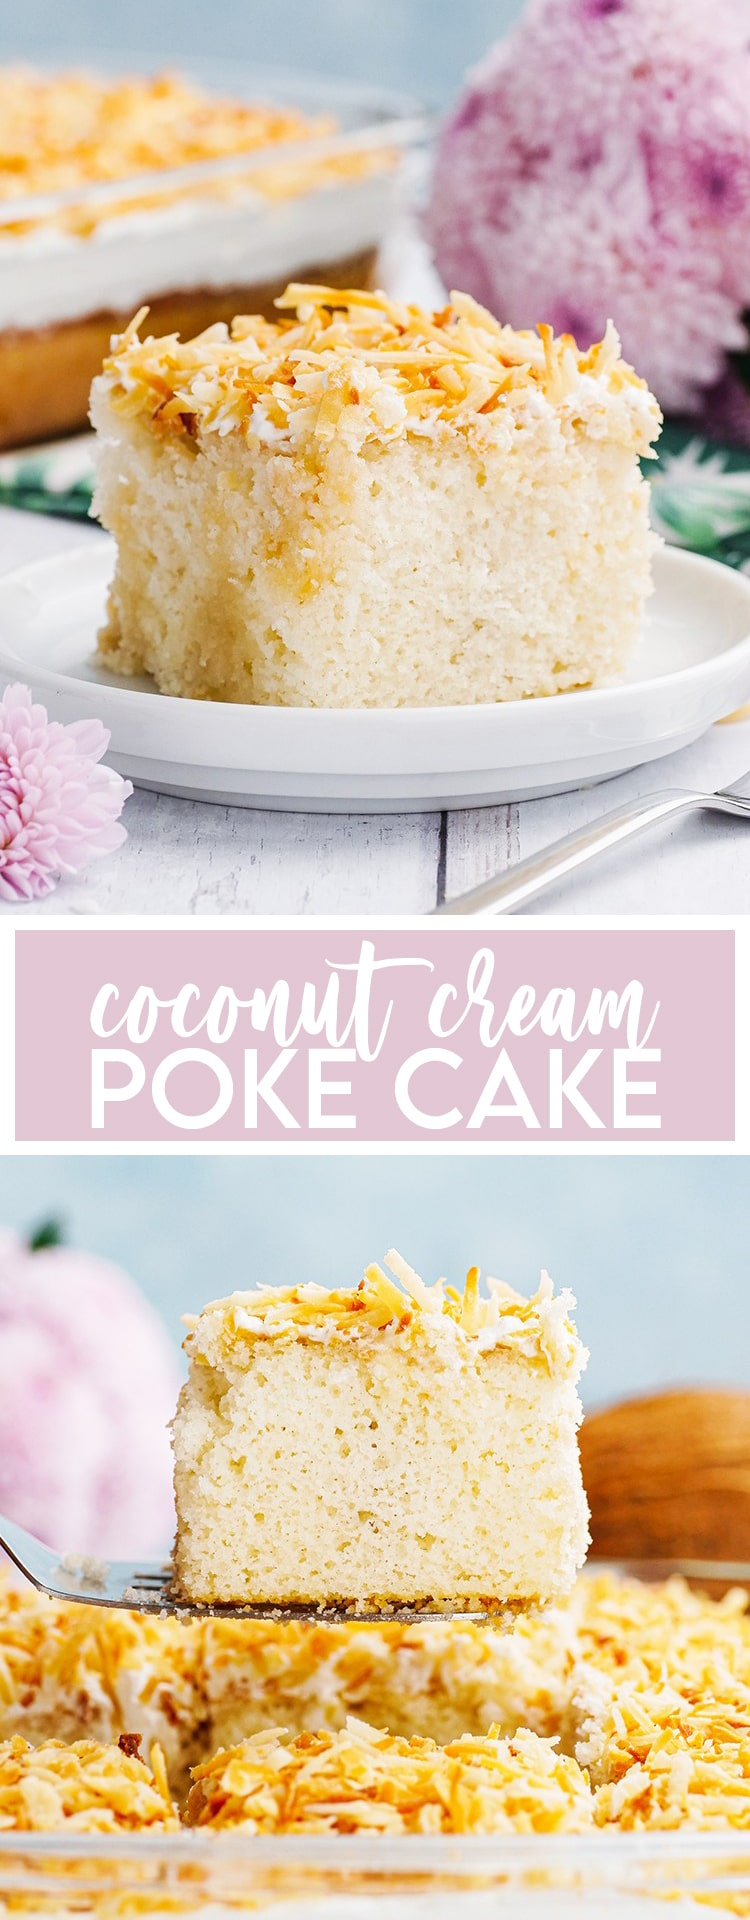 A collage of two photos of coconut cream poke cake with text in the middle. The first is a photo of the cake on a plate. The second is a photo of the coconut cake on a spatula.